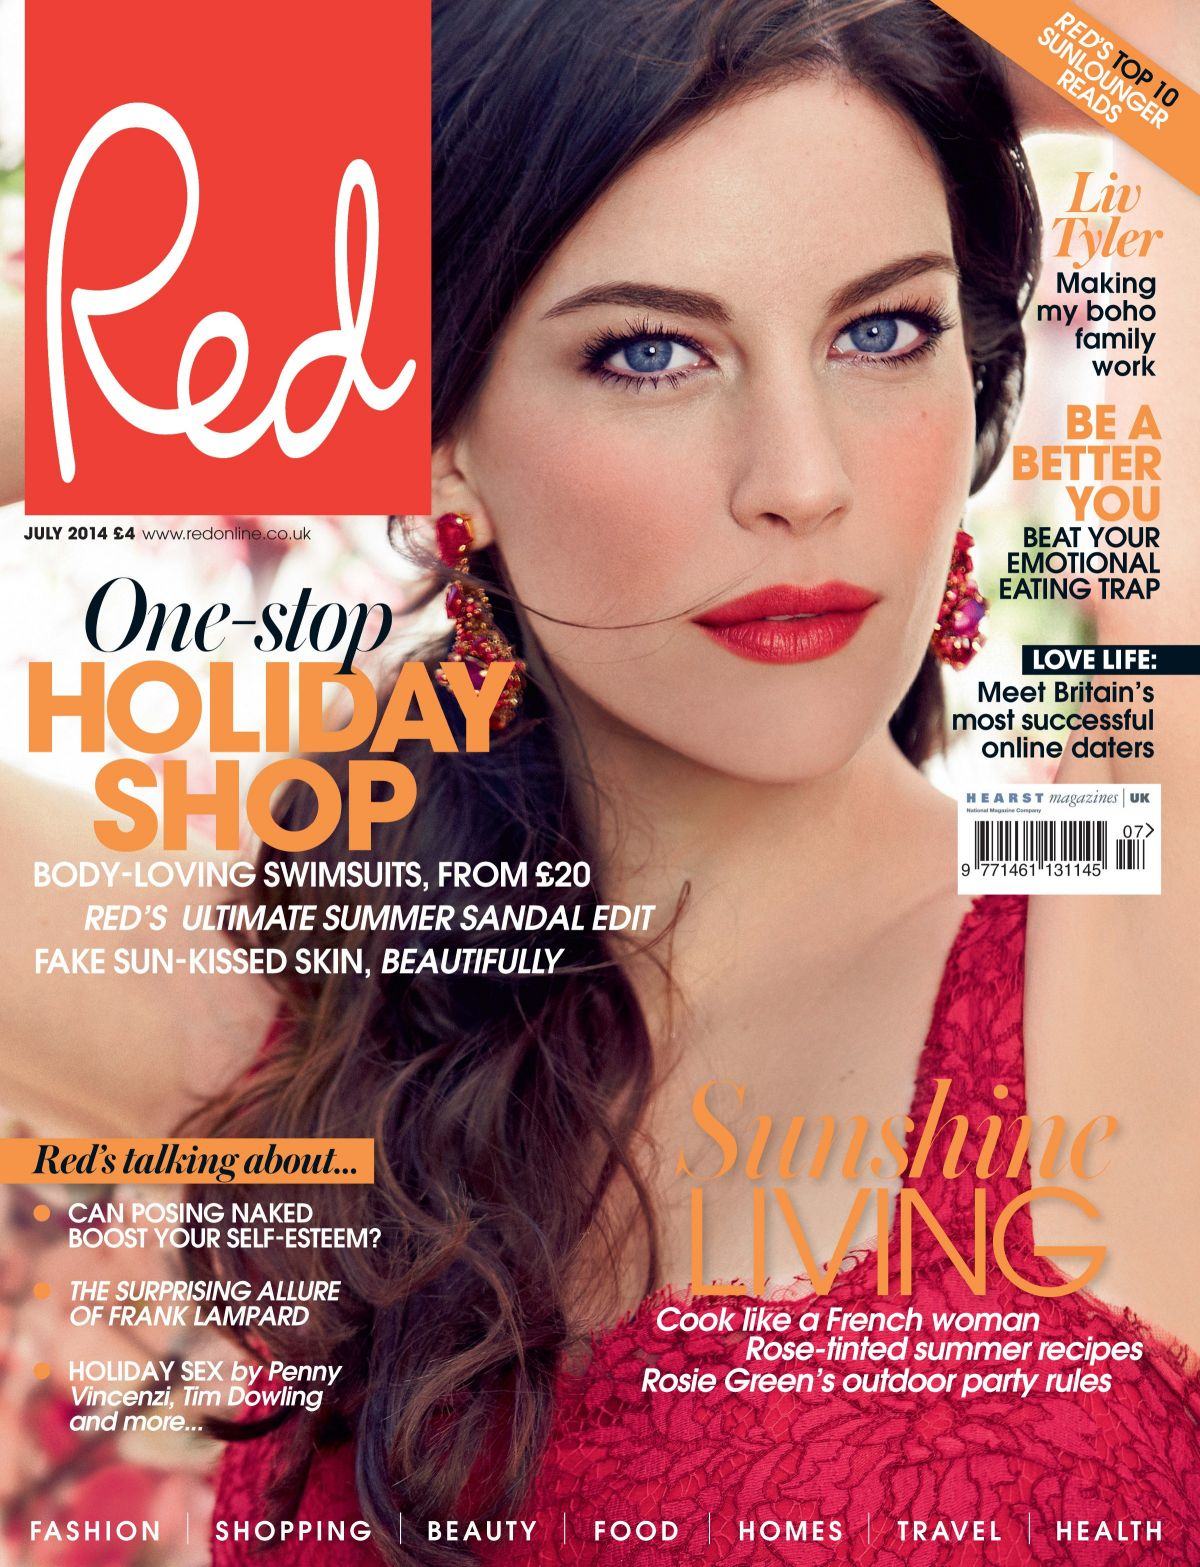 liv-tyler-on-the-cover-of-red-magazine-july-2014-issue_1